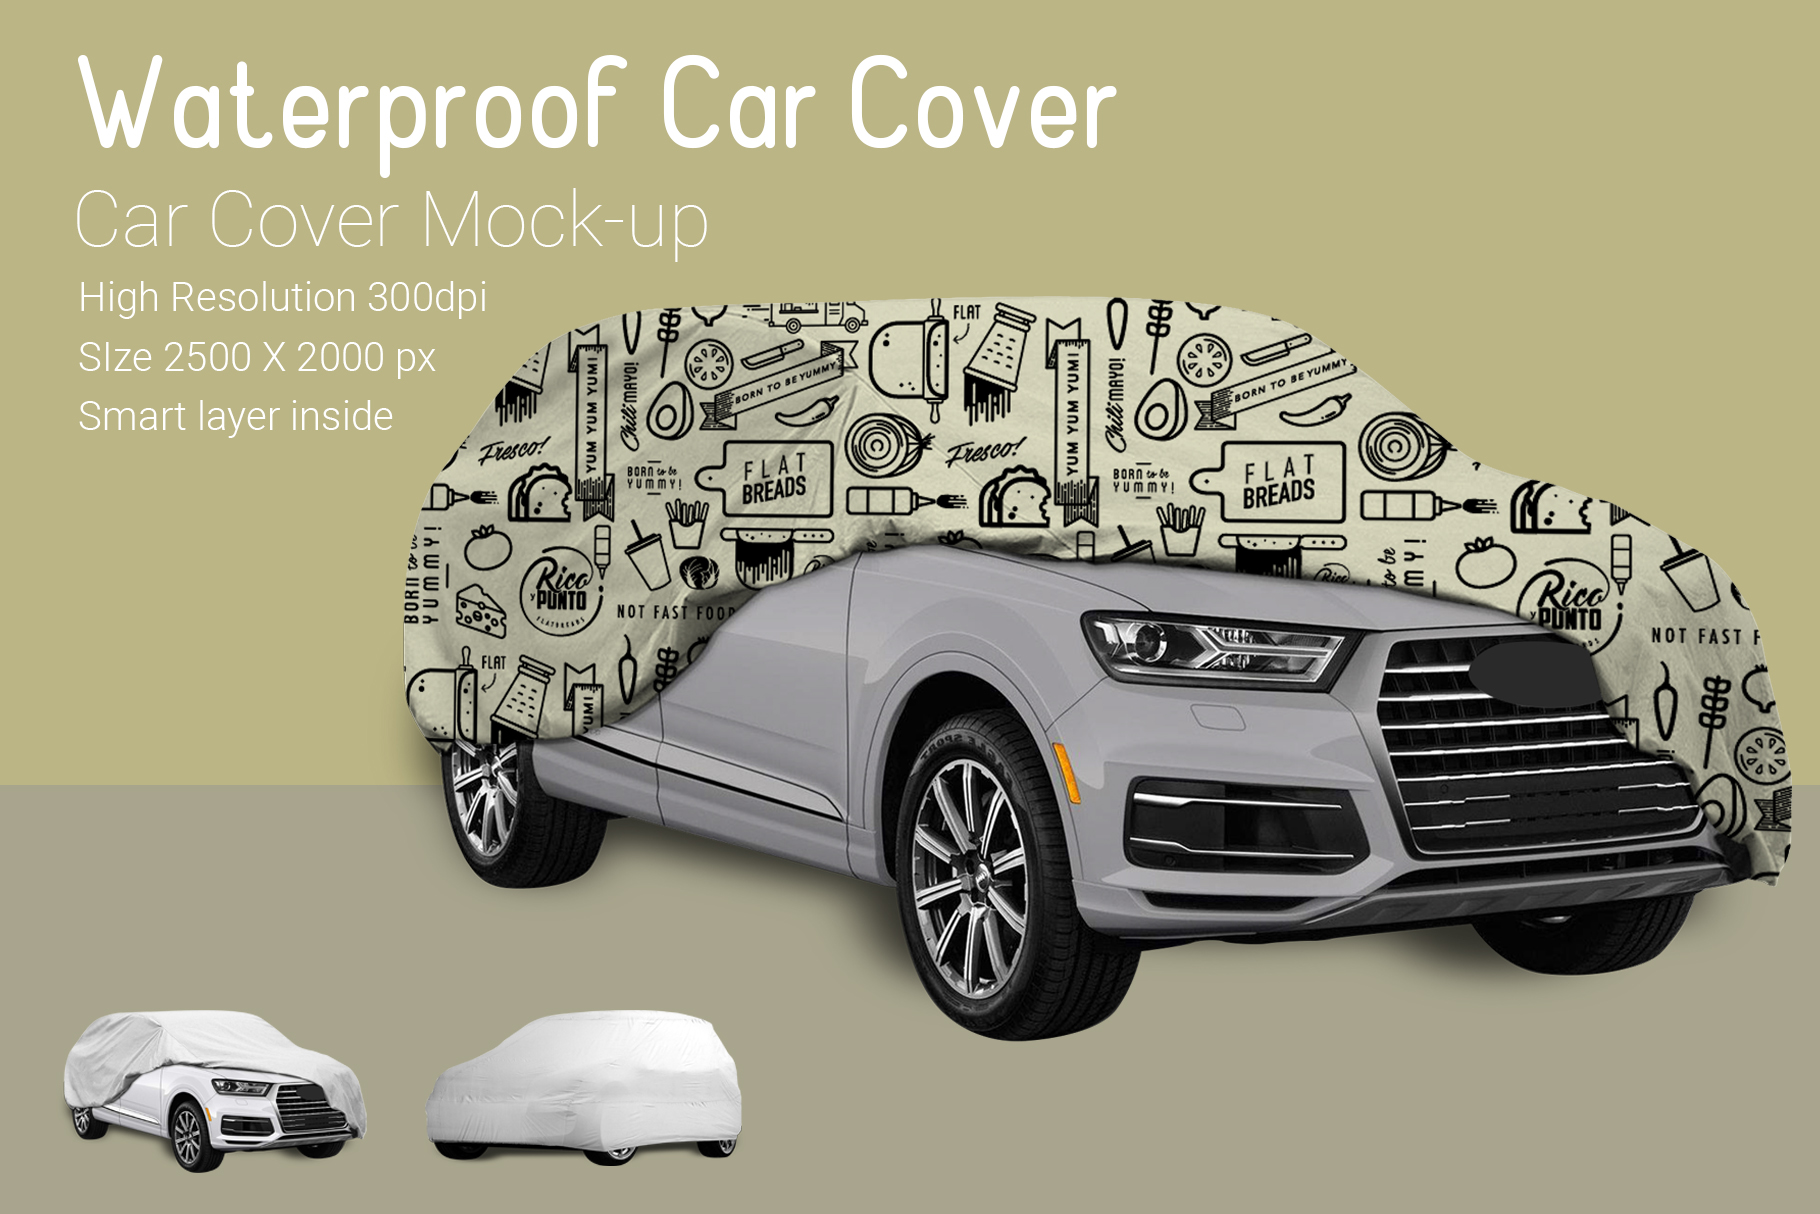 Car Cover Mock-Up example image 5